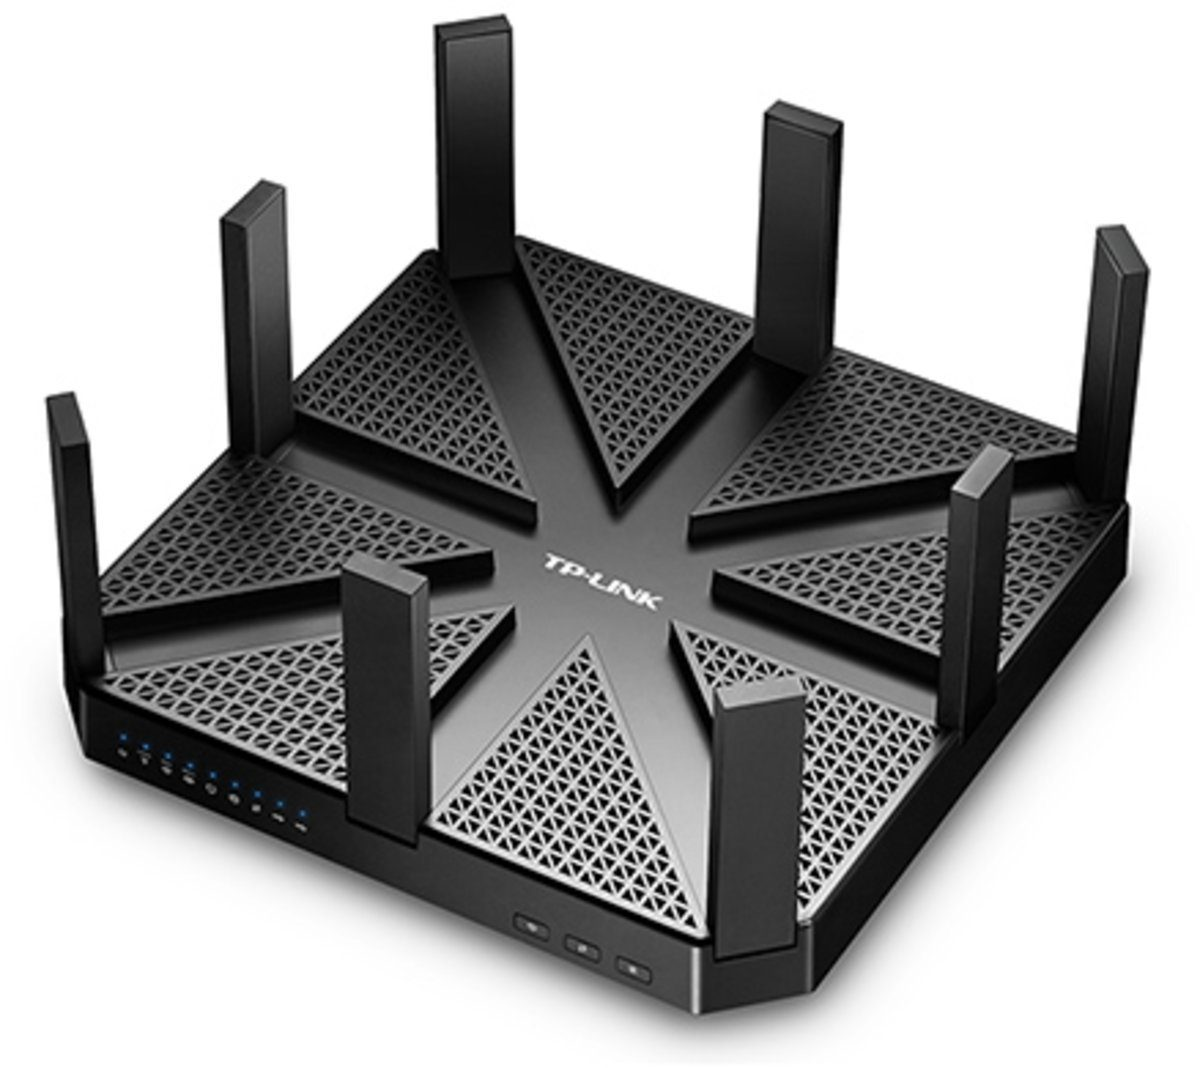 TP-Link Router »AD7200 Tri-Band WLAN AC Gigabit Router«